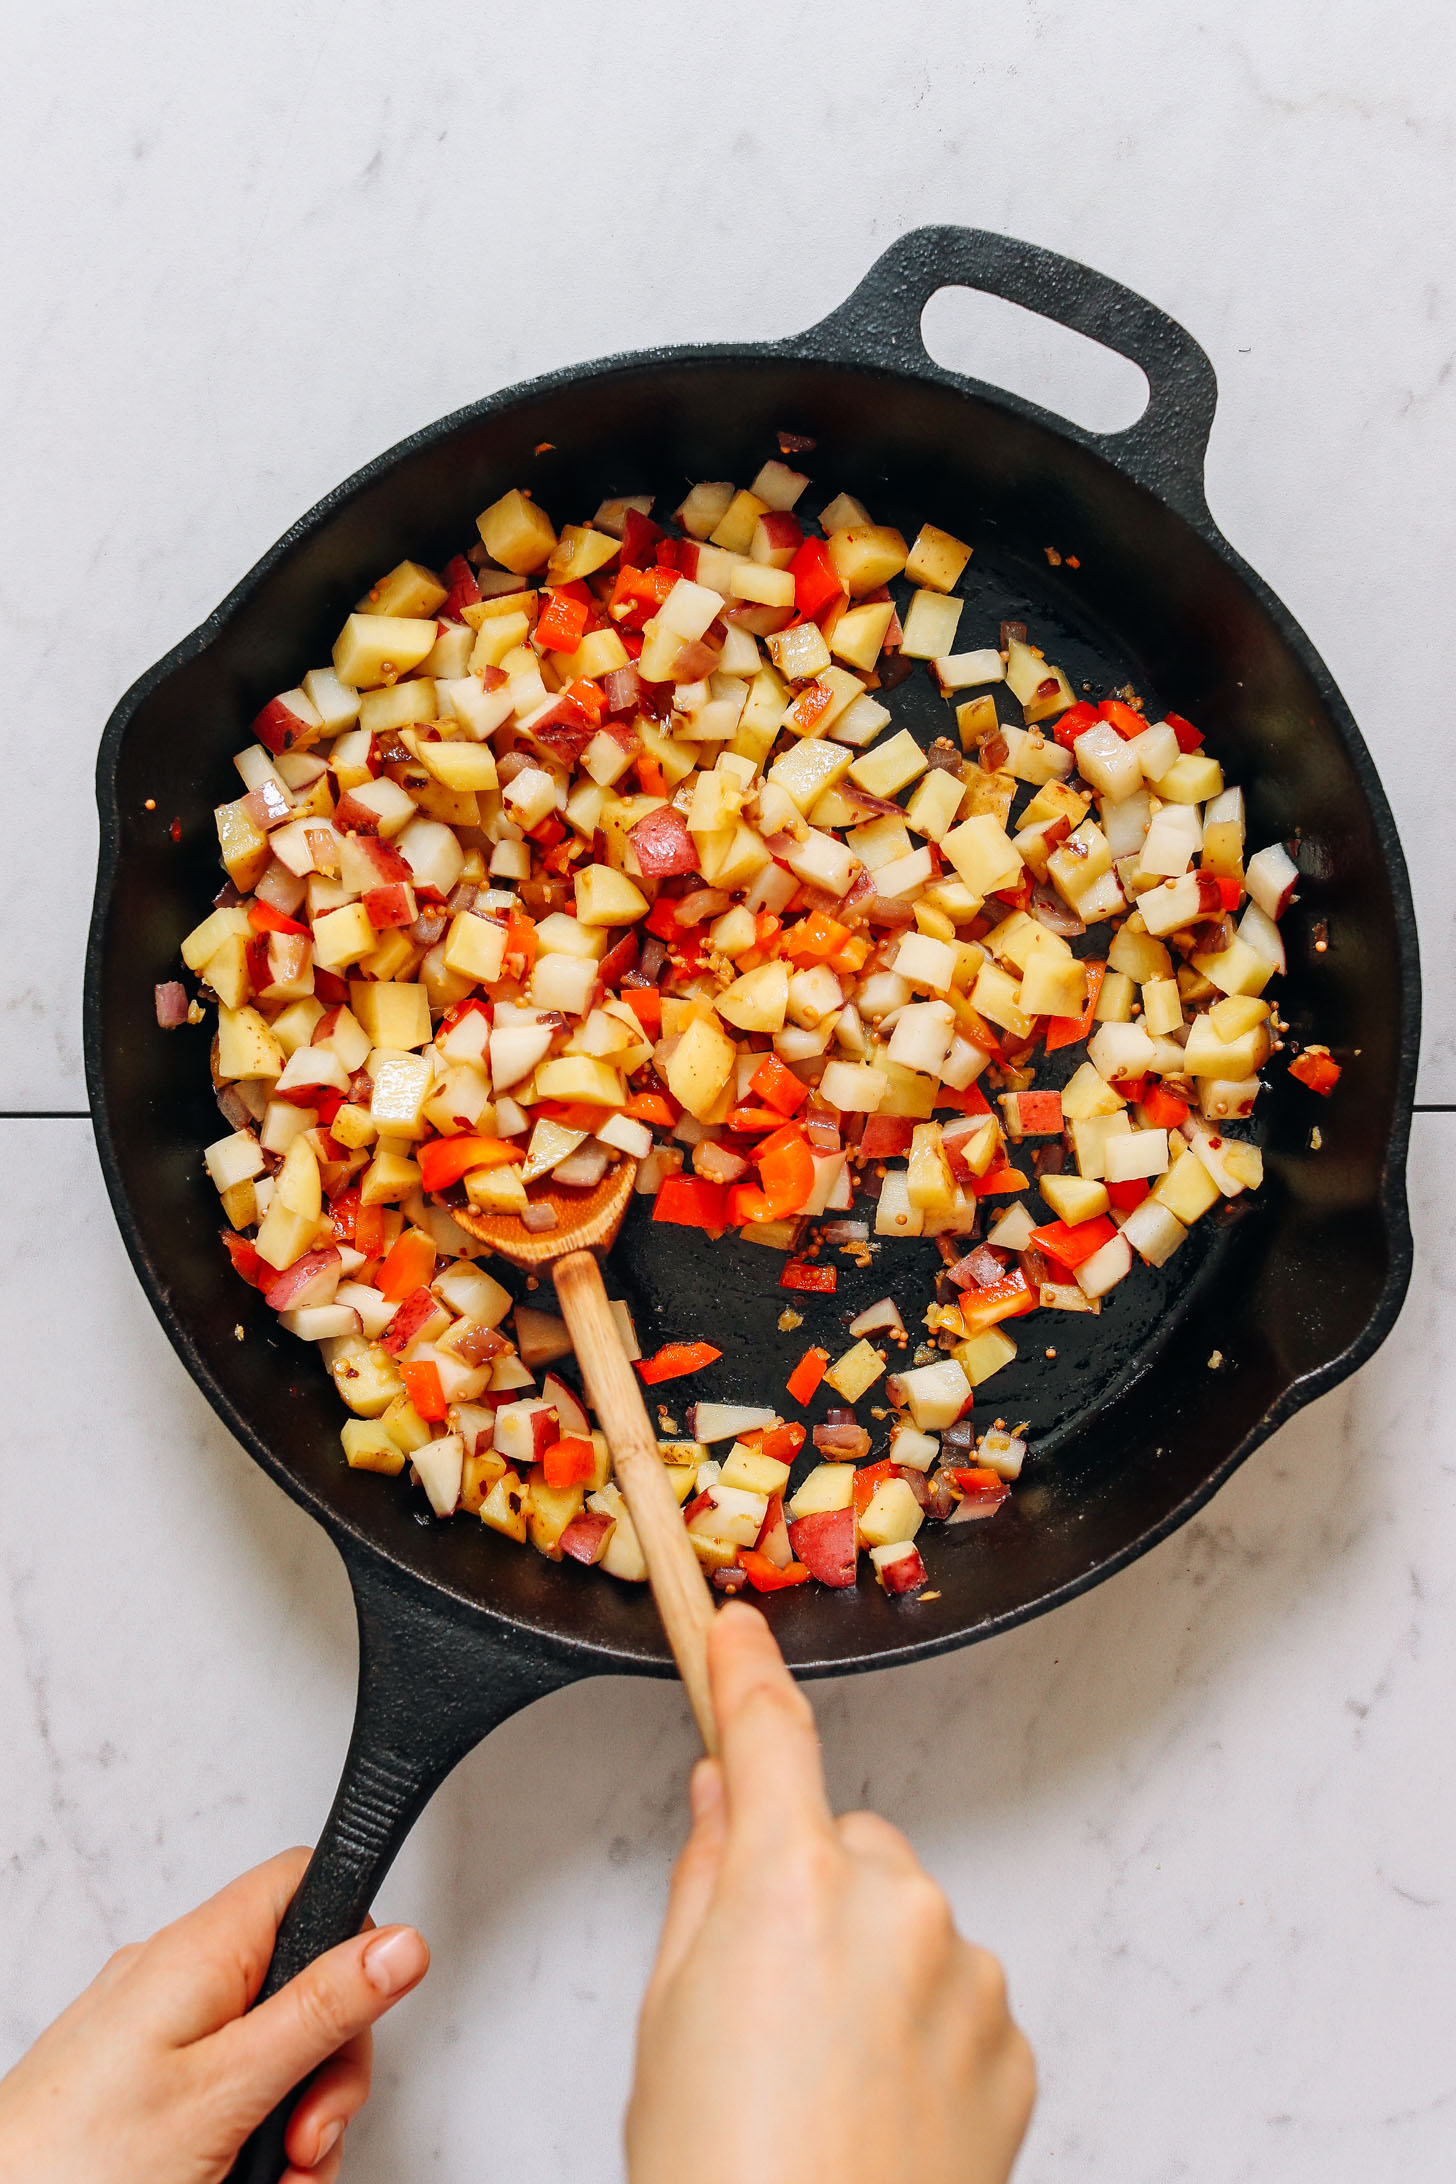 Using a wooden spoon to stir ingredients for Potato Aloo Sabzi in a cast-iron skillet